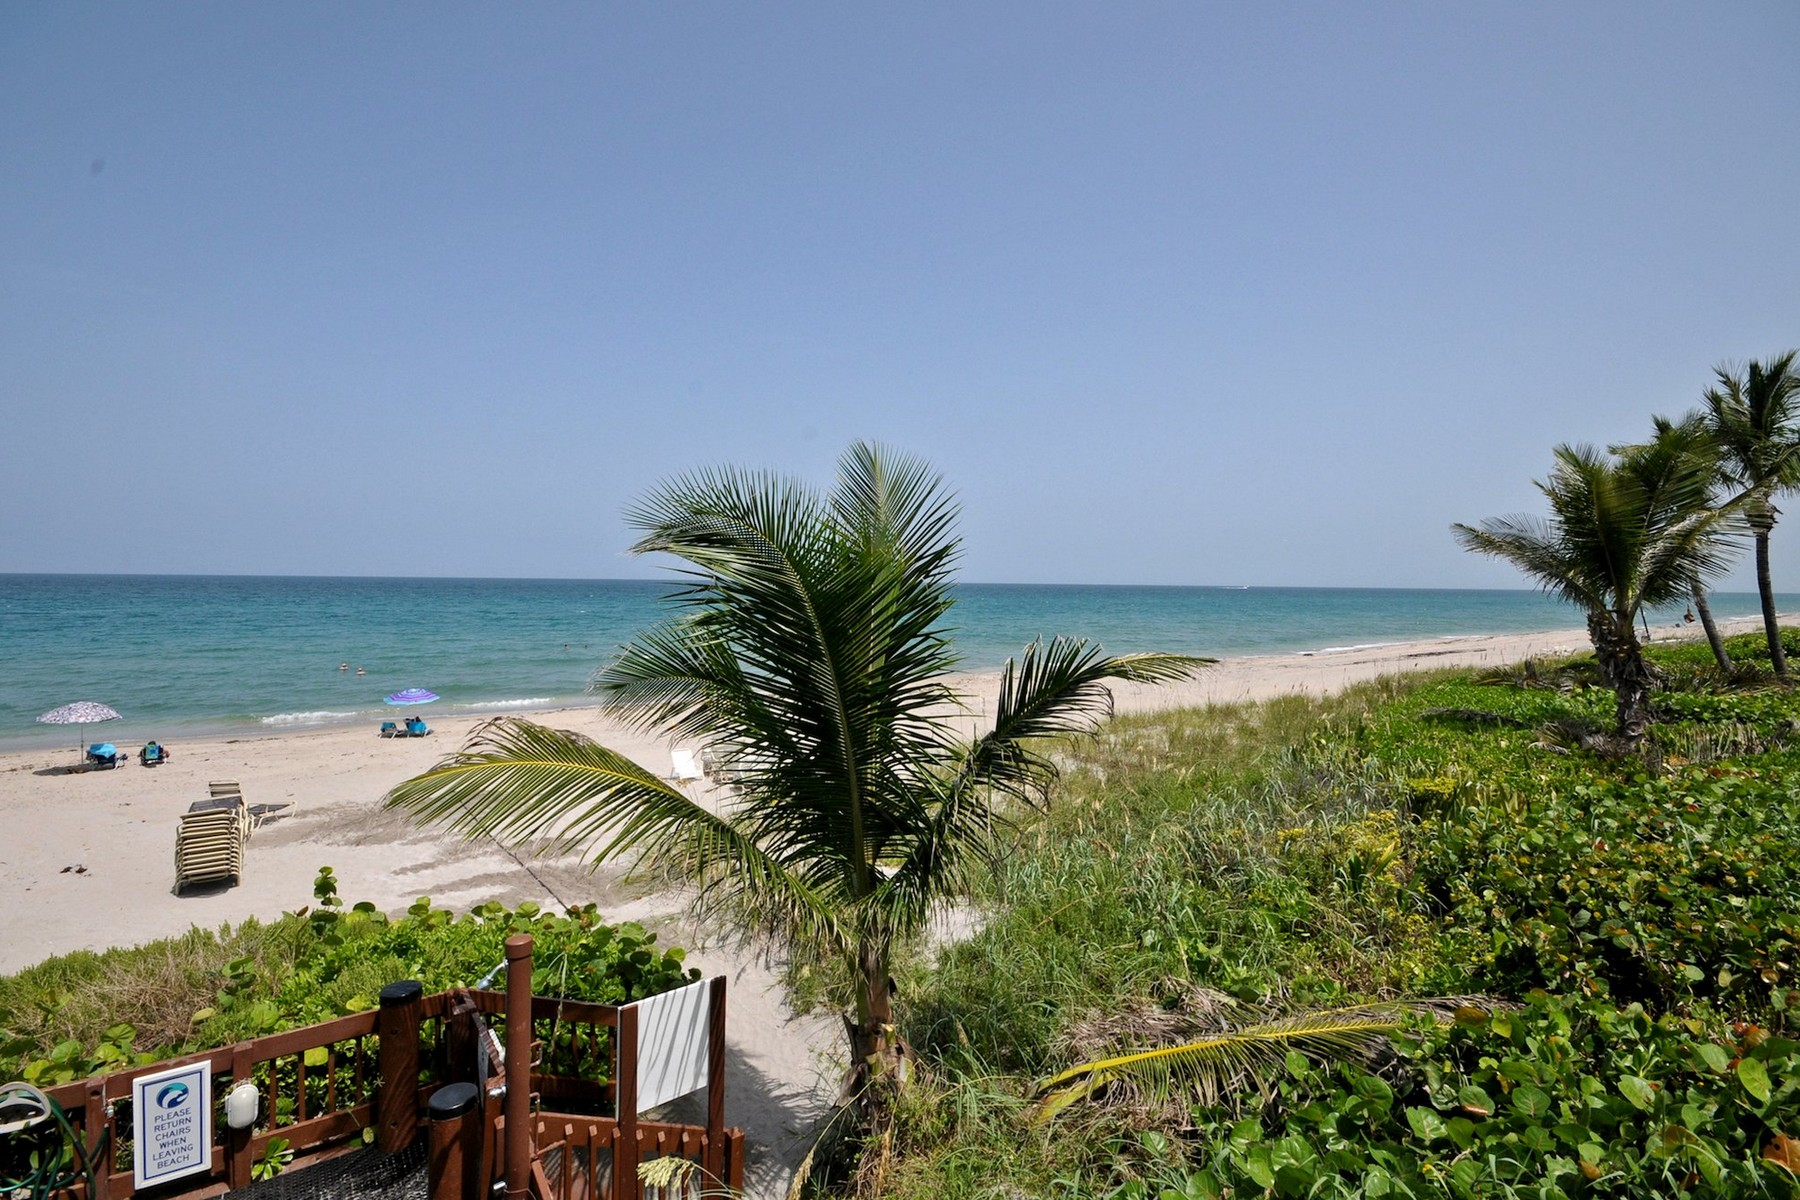 Property For Sale at 3400 S Ocean Blvd , Highland Beach, FL 33487